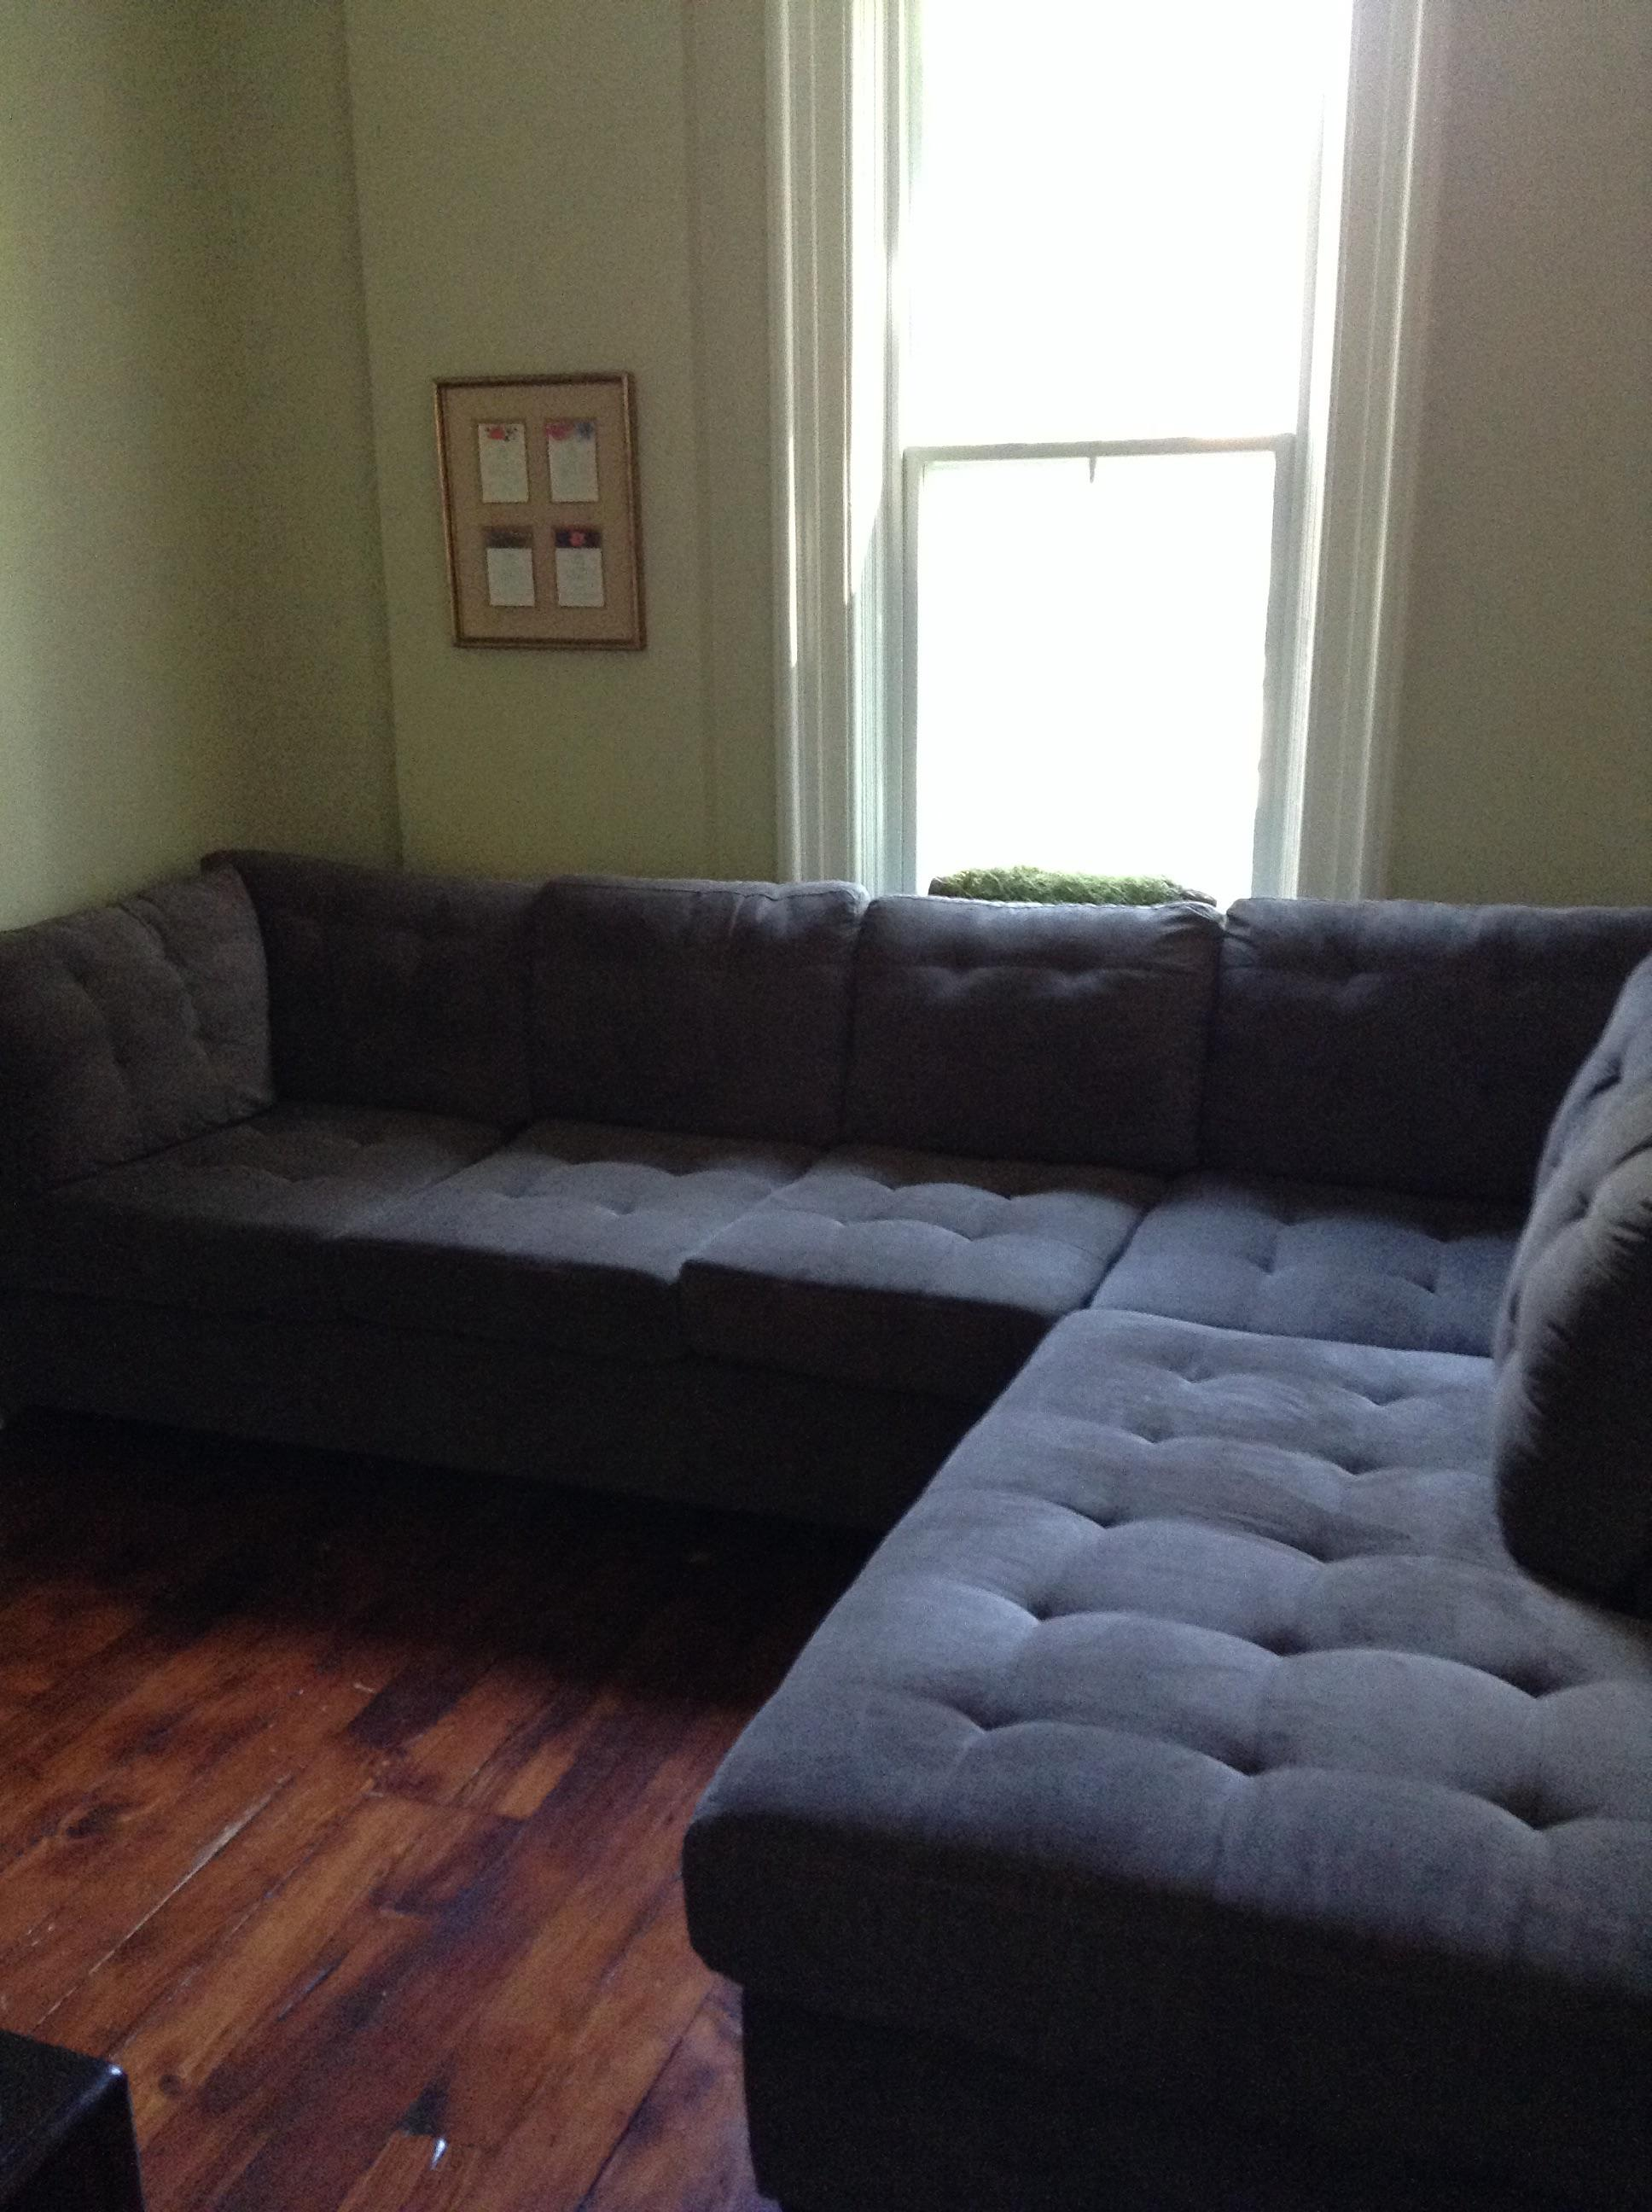 Most Comfortable Affordable Couch Top 10 Reviews Of Wholesale Furniture Brokers